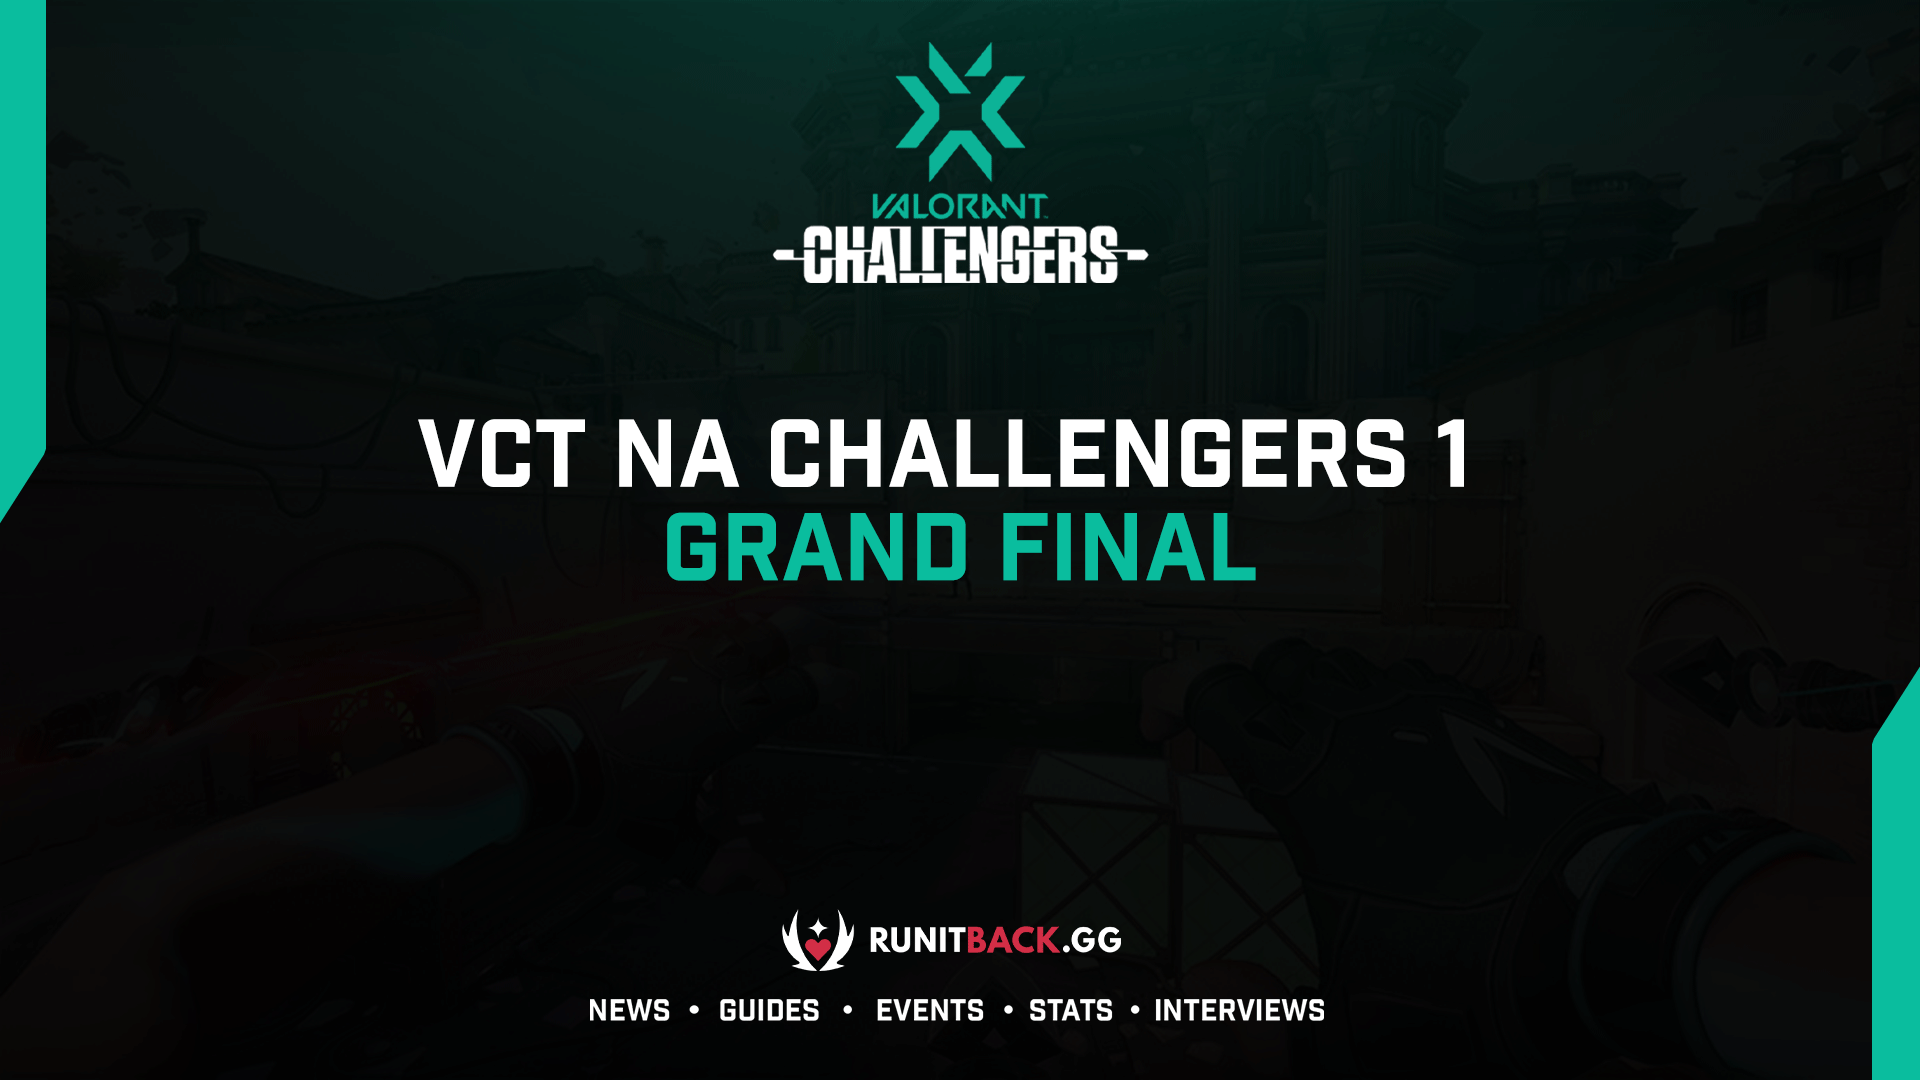 VCT NA Challengers 1 Qualifier: Grand Final Results